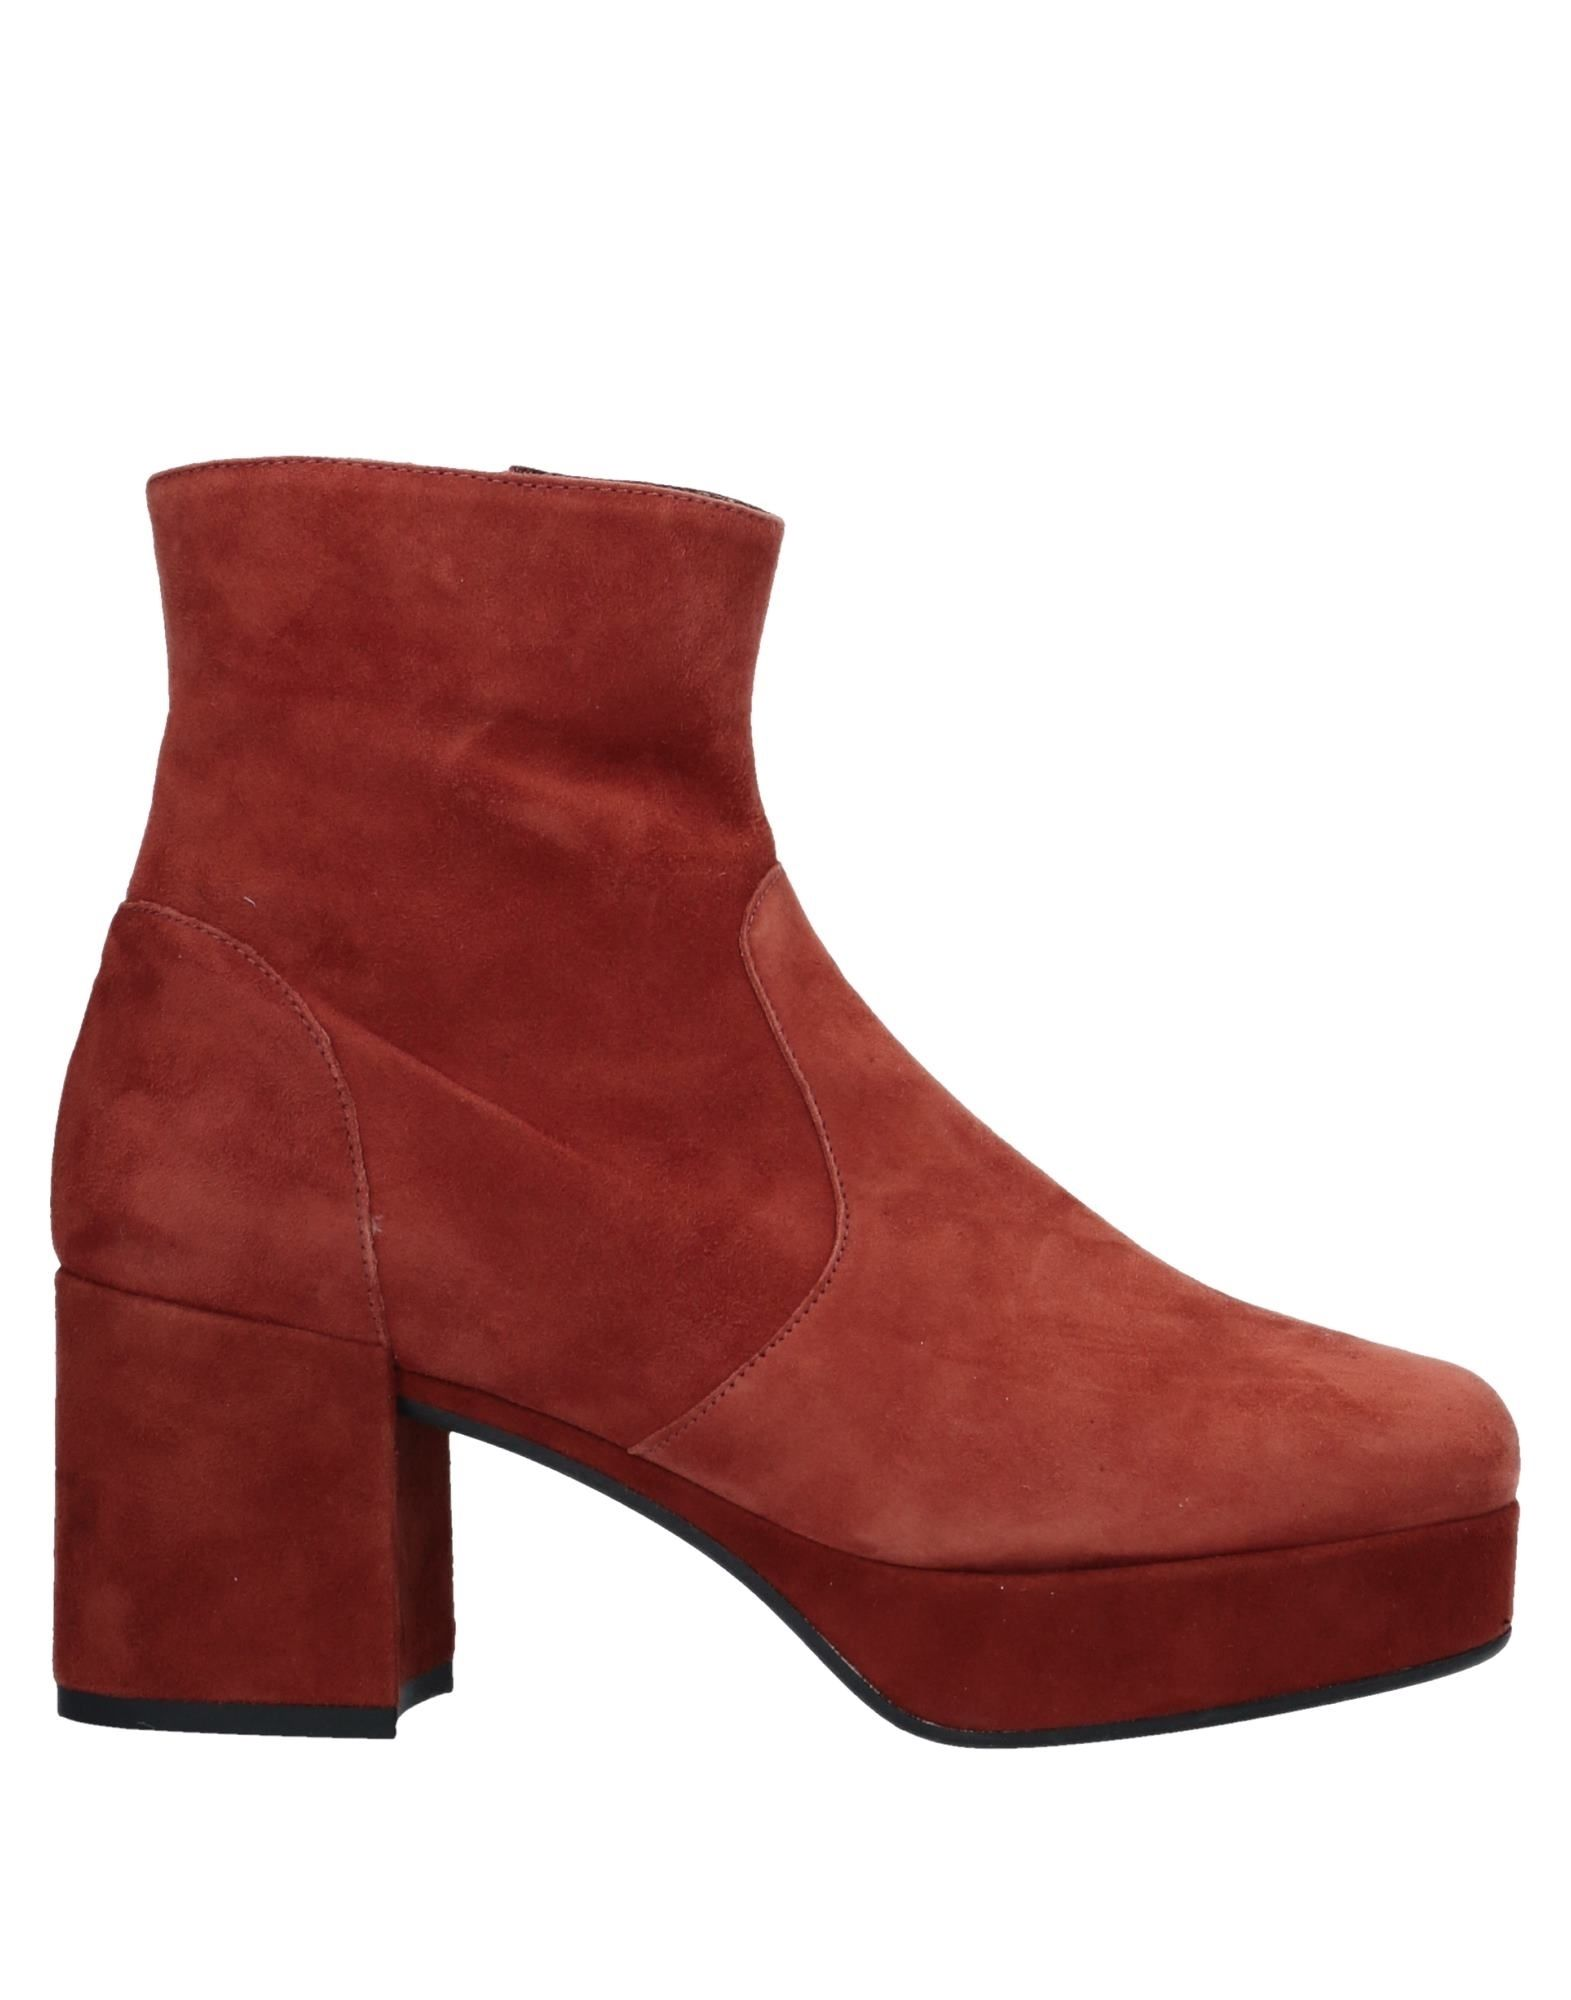 Pf16 Ankle Boot - Women Pf16 Ankle Boots online 11513776ND on  Australia - 11513776ND online 641a07